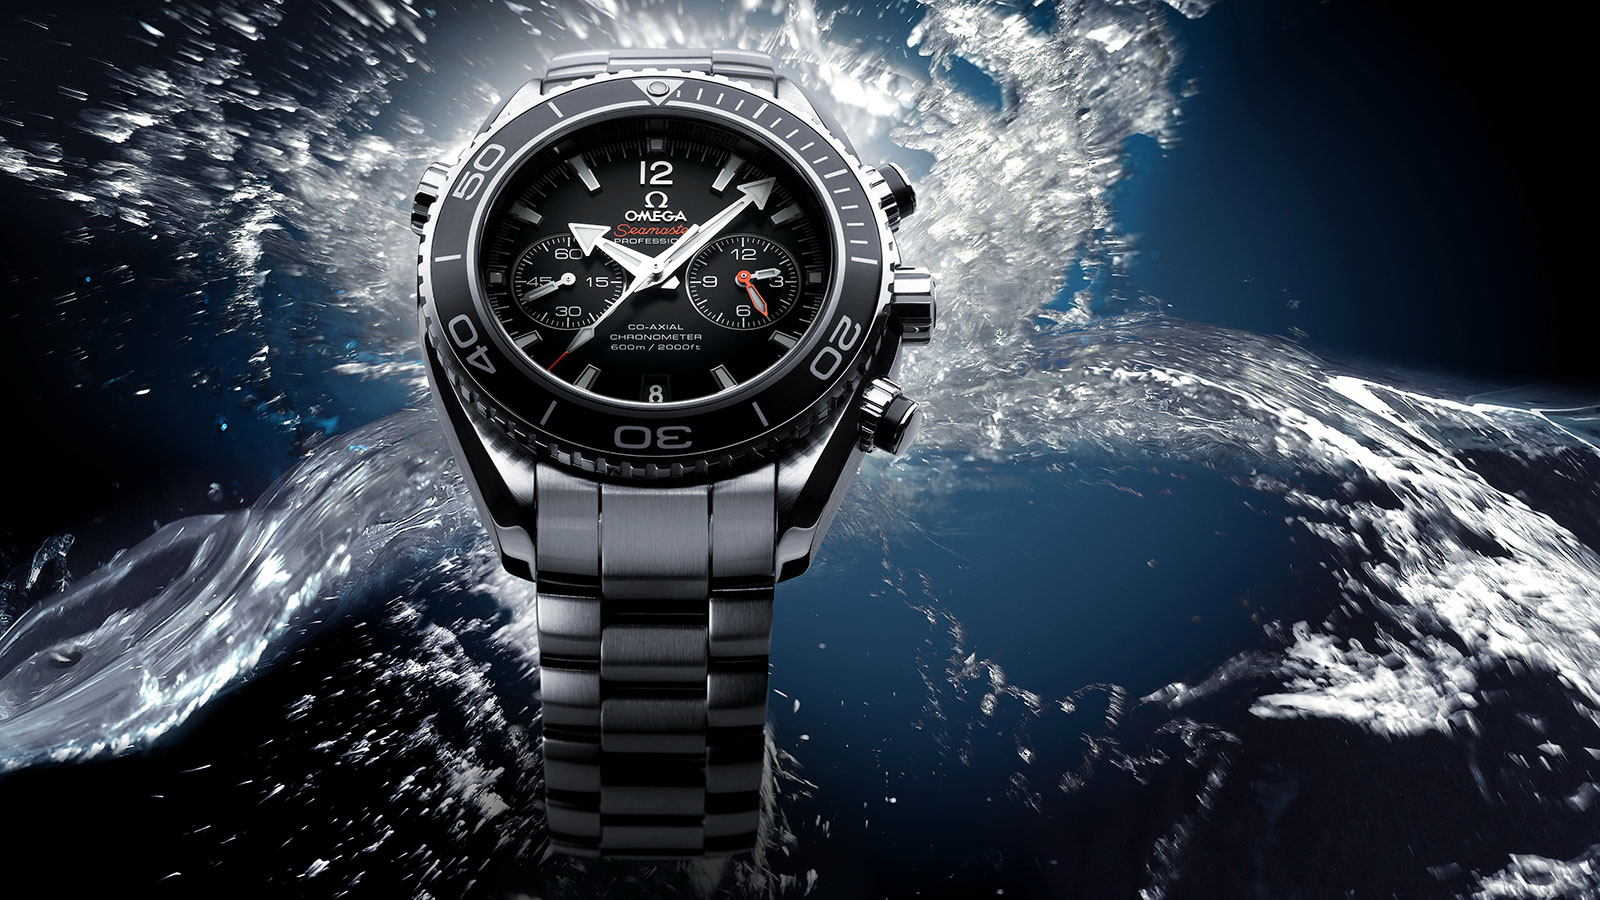 Seamaster Planet Ocean 600M Planet Ocean 600M Omega Co‑Axial Chronograph 45.5 mm Watch - 232.30.46.51.01.001